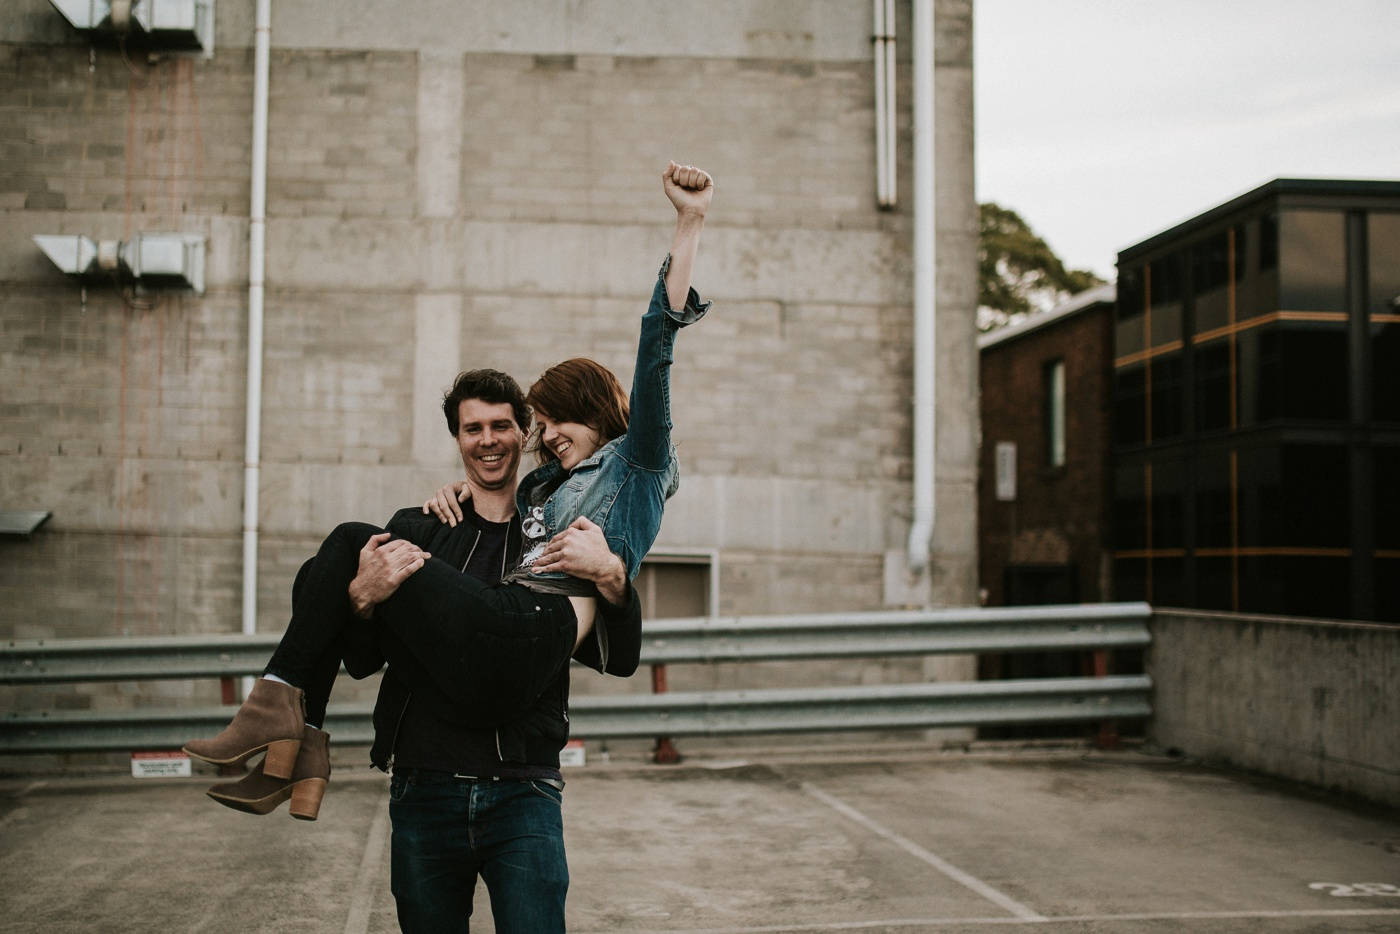 heli-alex_melbourne-fun-candid-gritty-relaxed-city-urban-couples-engagement-session_melbourne-wedding-photography_26